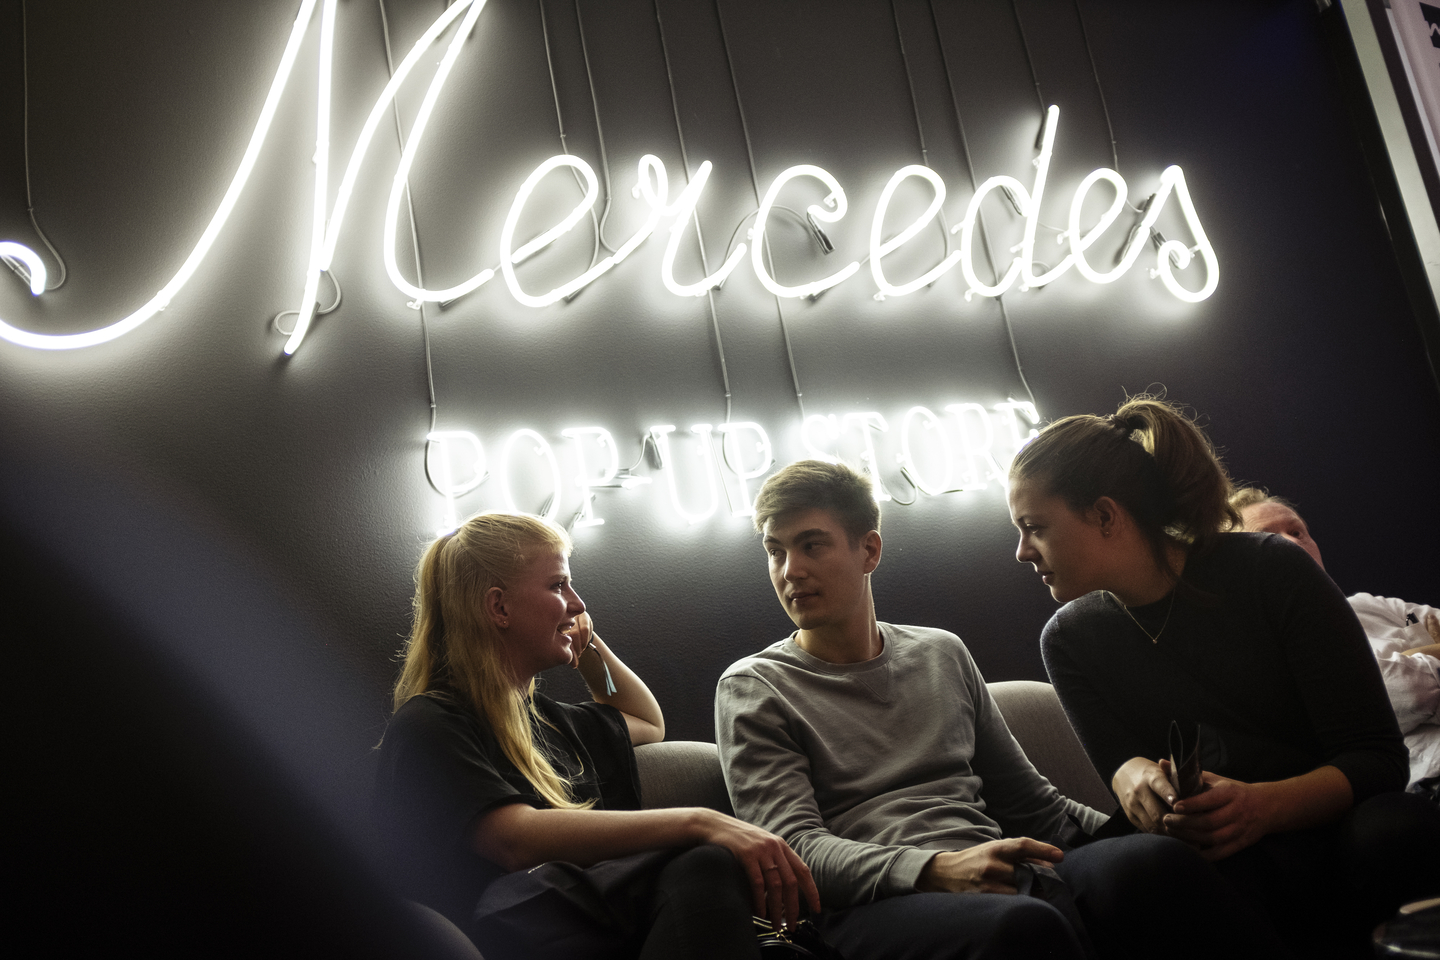 Visitors enjoyed the Mercedes-Benz pop-up store. Photo by Teymur Madjderey/Daimler AG